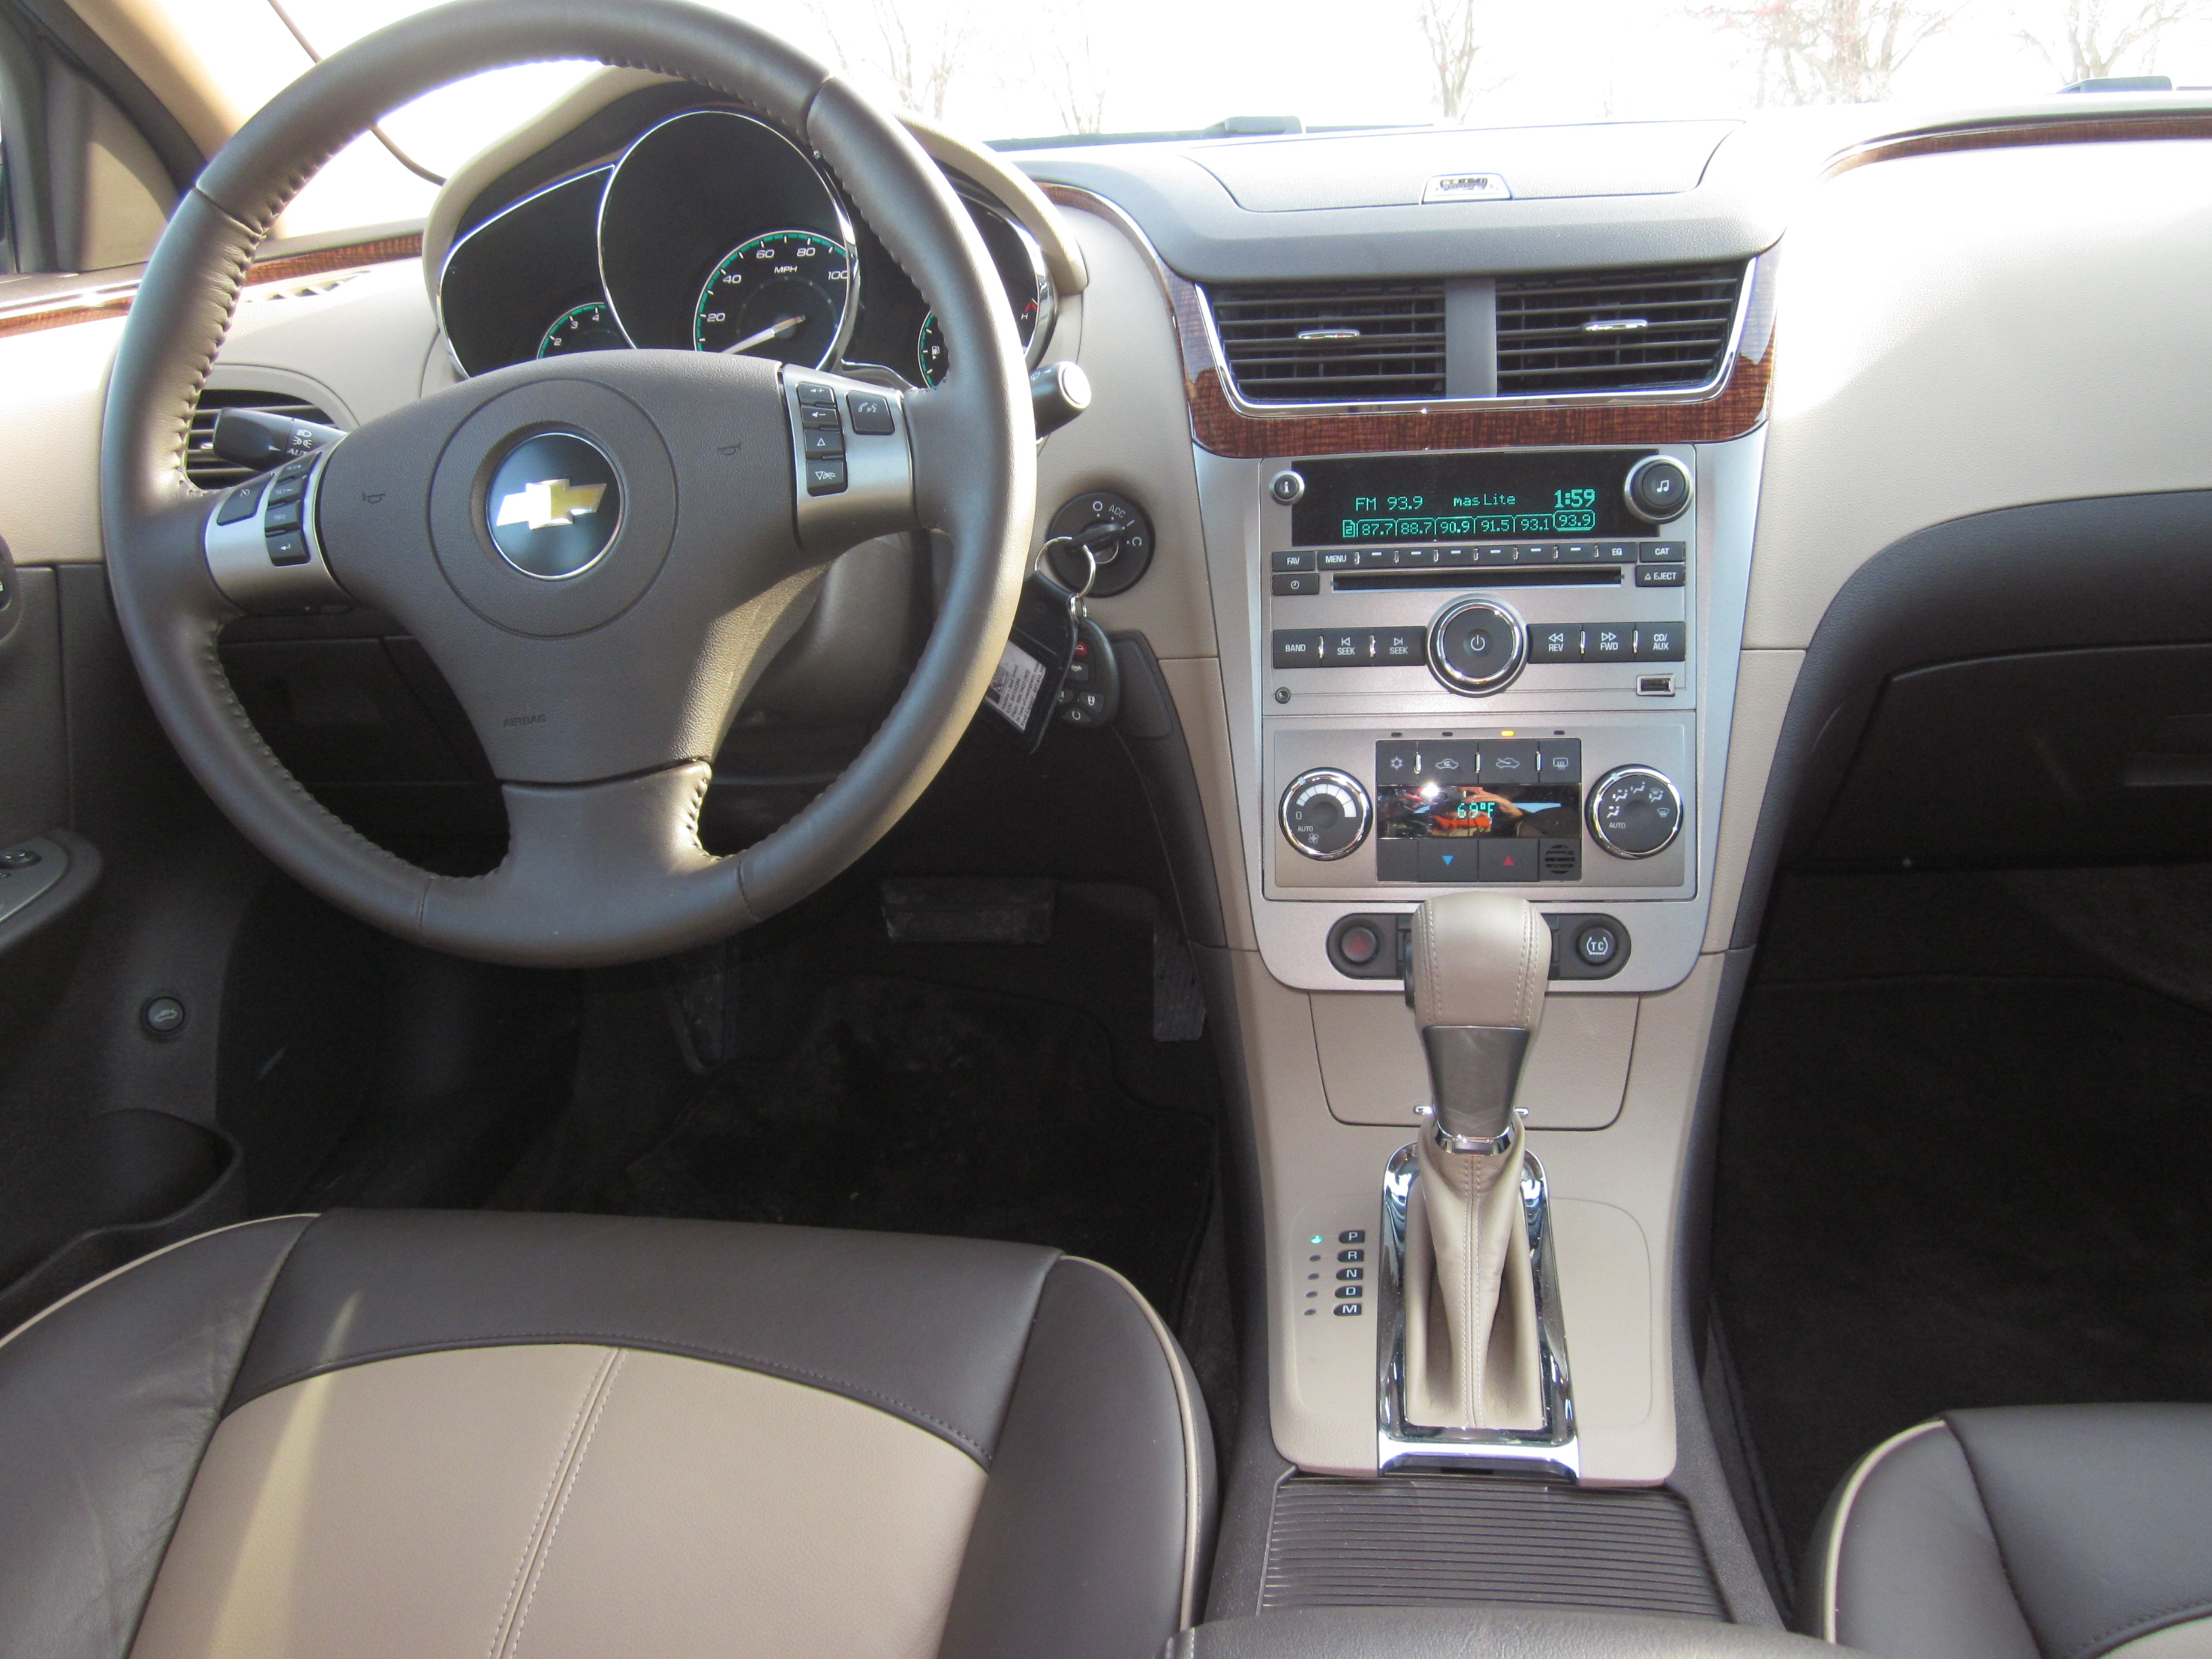 2011 Chevrolet Malibu(select To View Enlarged Photo) Design Ideas